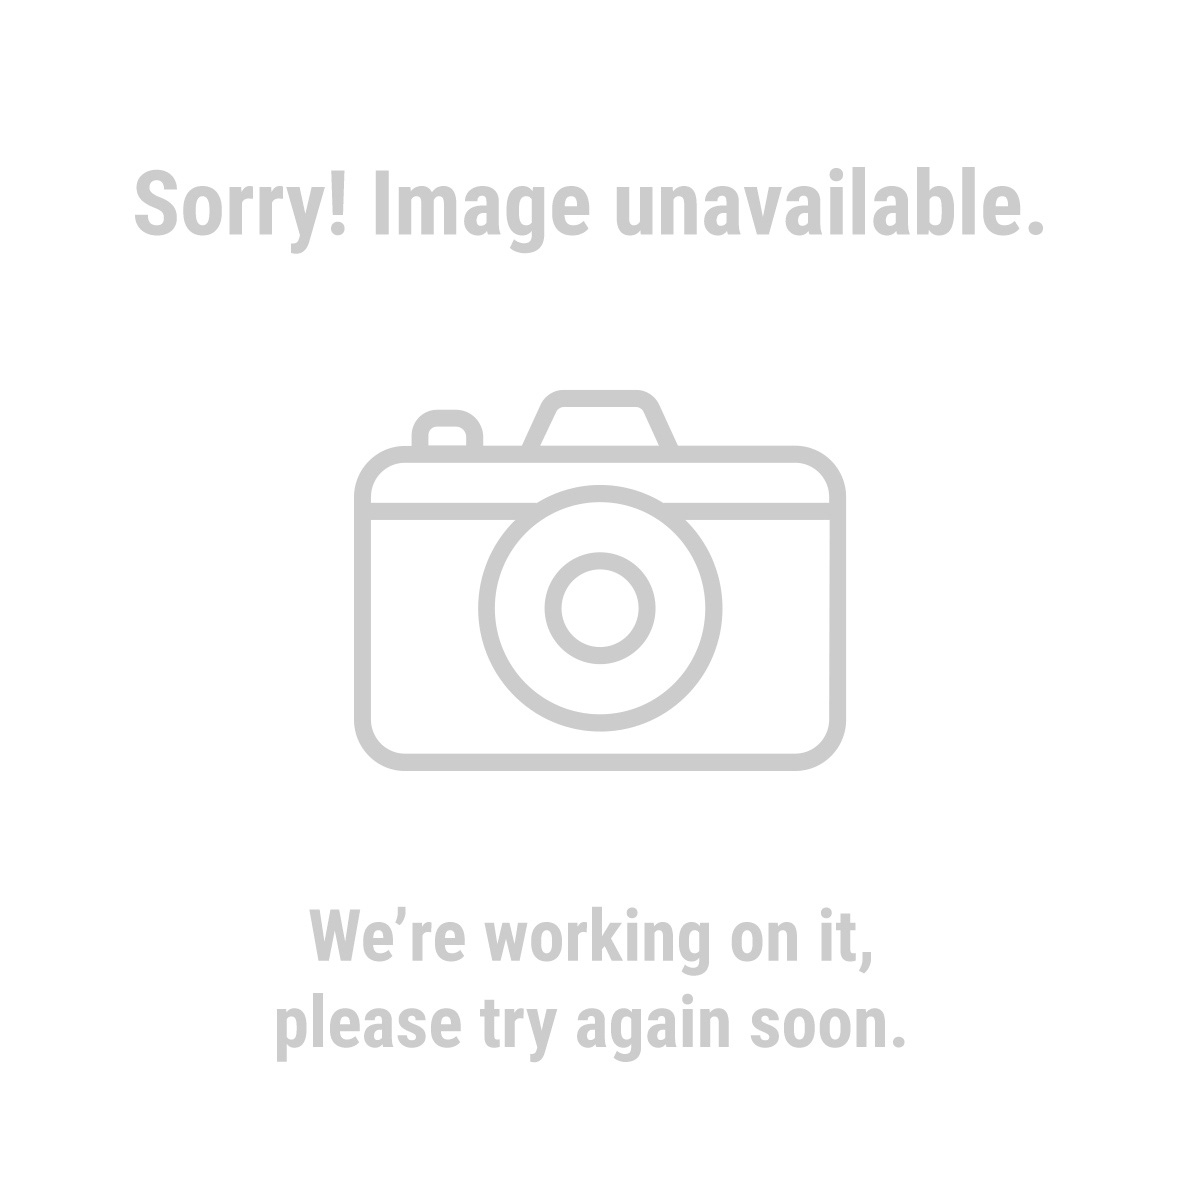 Storehouse 67655 300 Piece External Retaining Ring Assortment